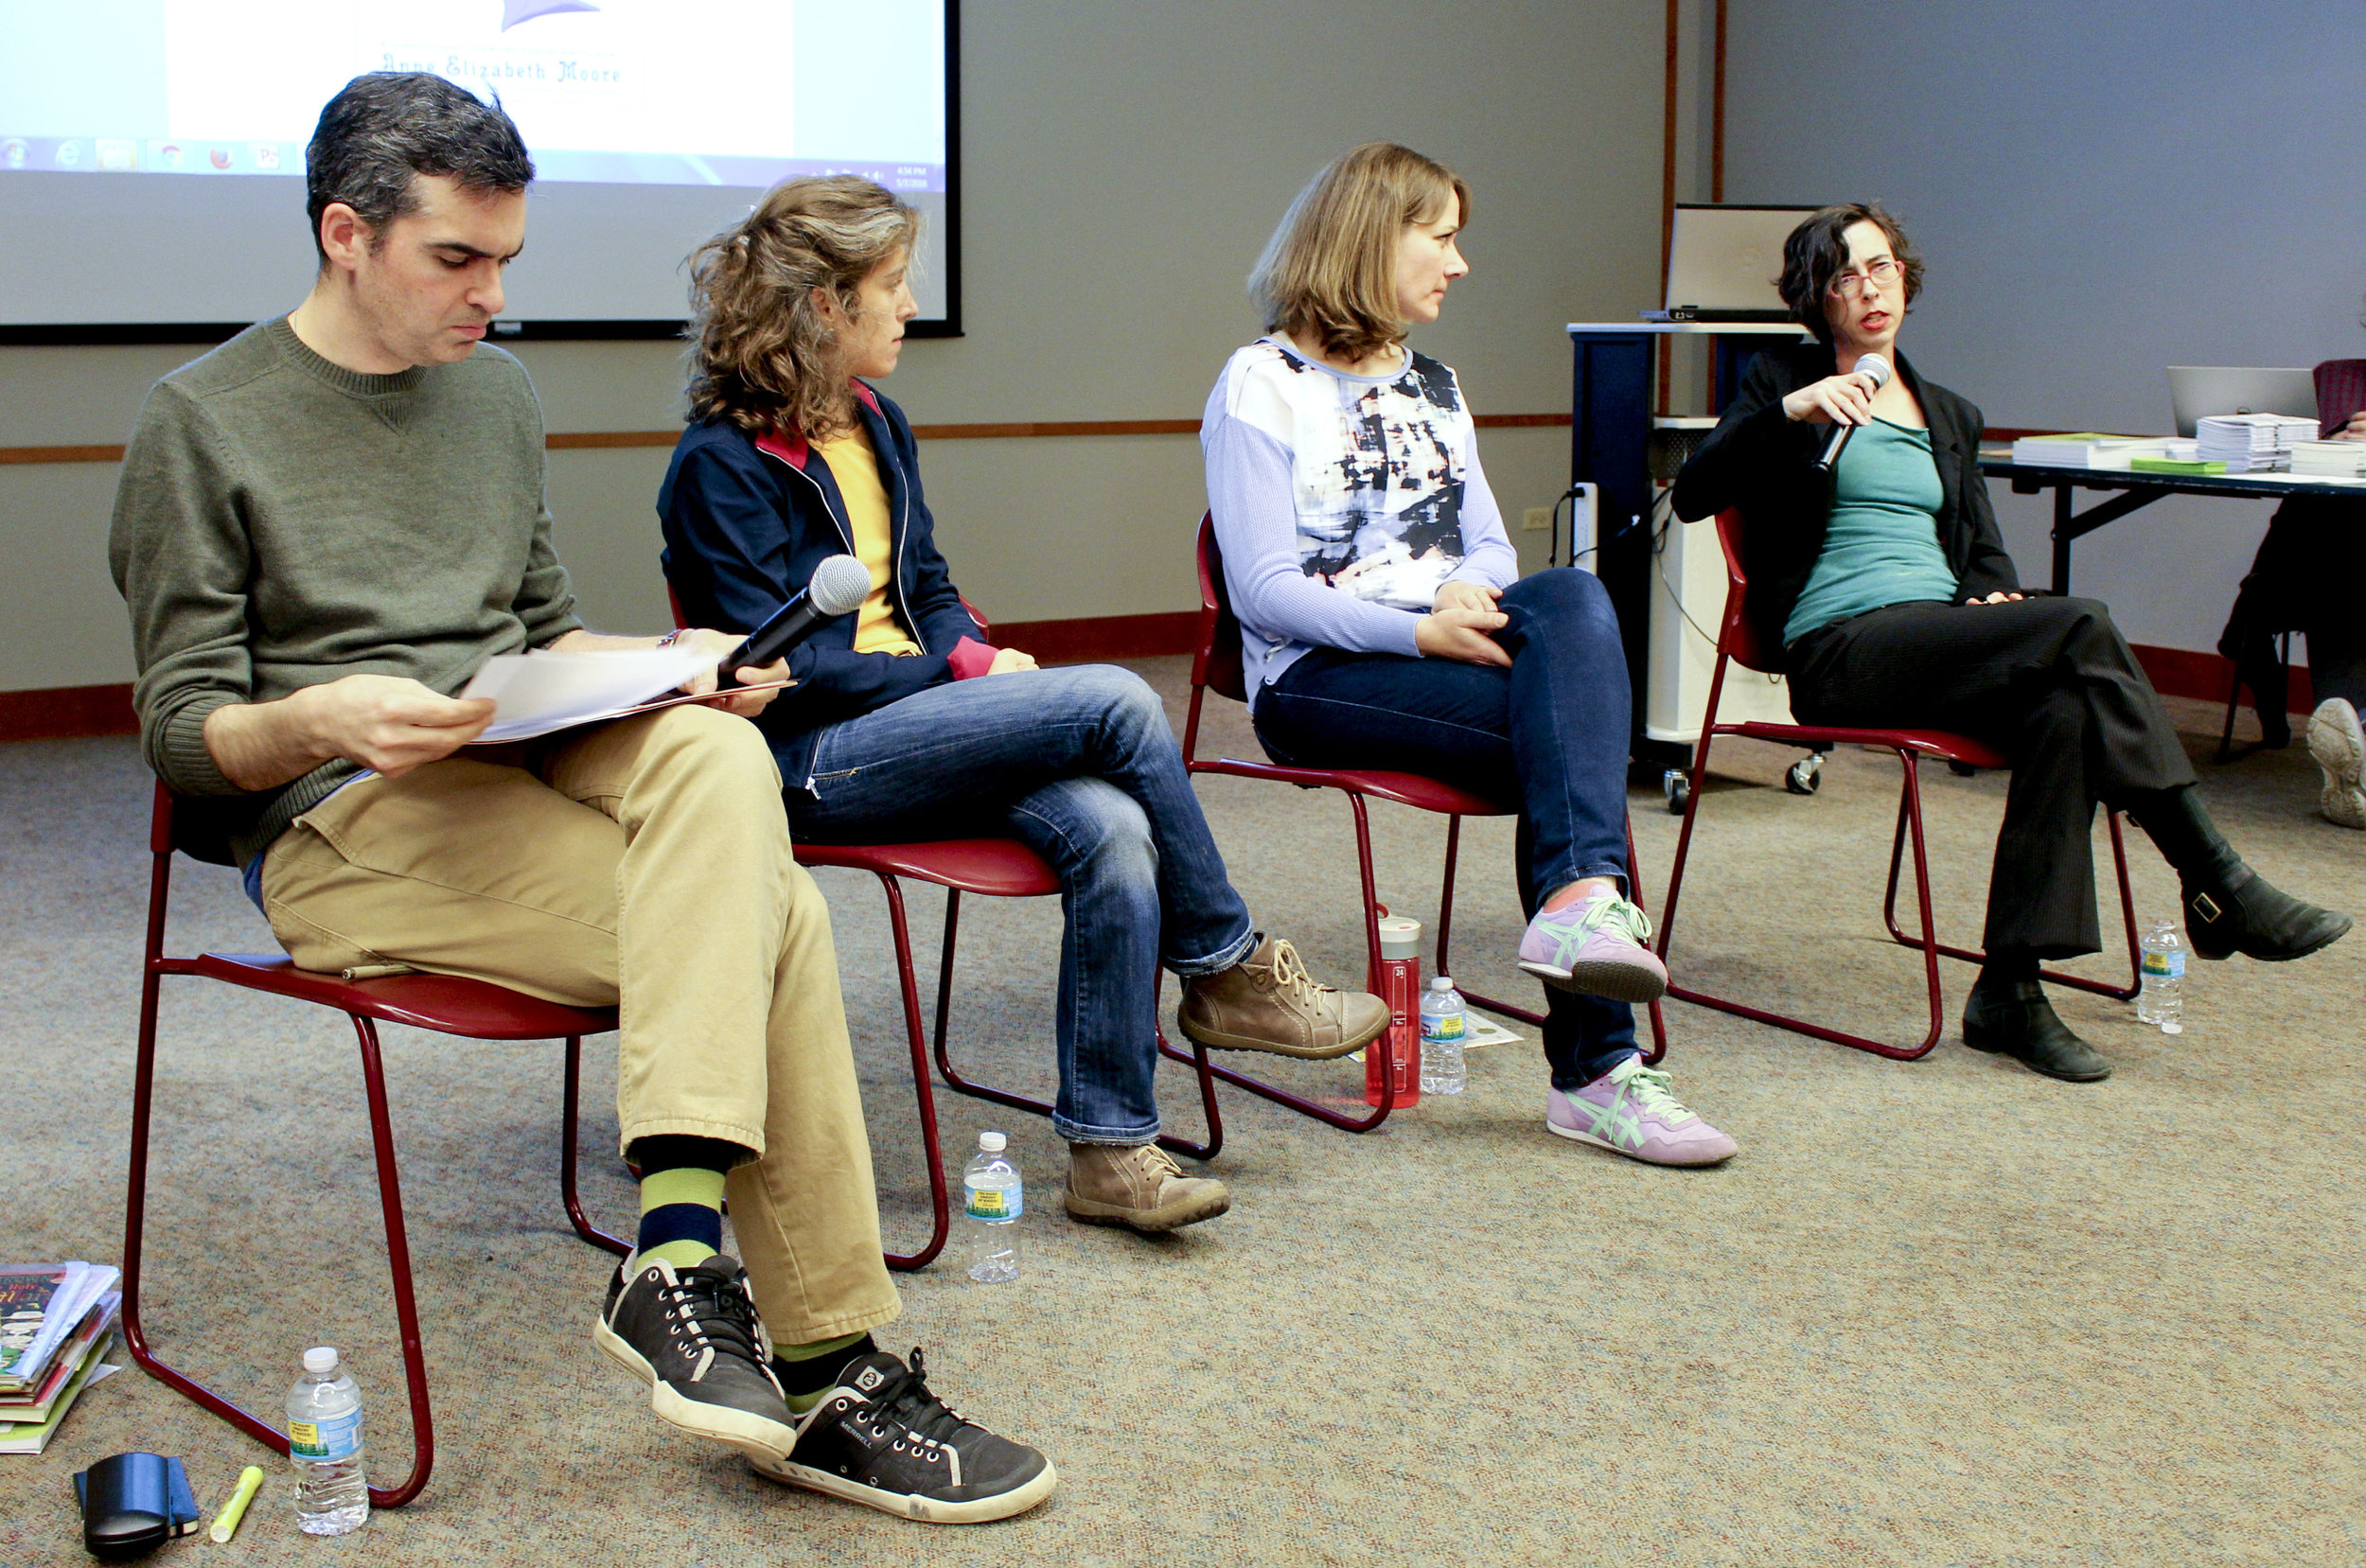 Brian Cremins, Ozge Samanci, Keiler Roberts, and Anne Elizabeth Moore at the Evanston Public Library.